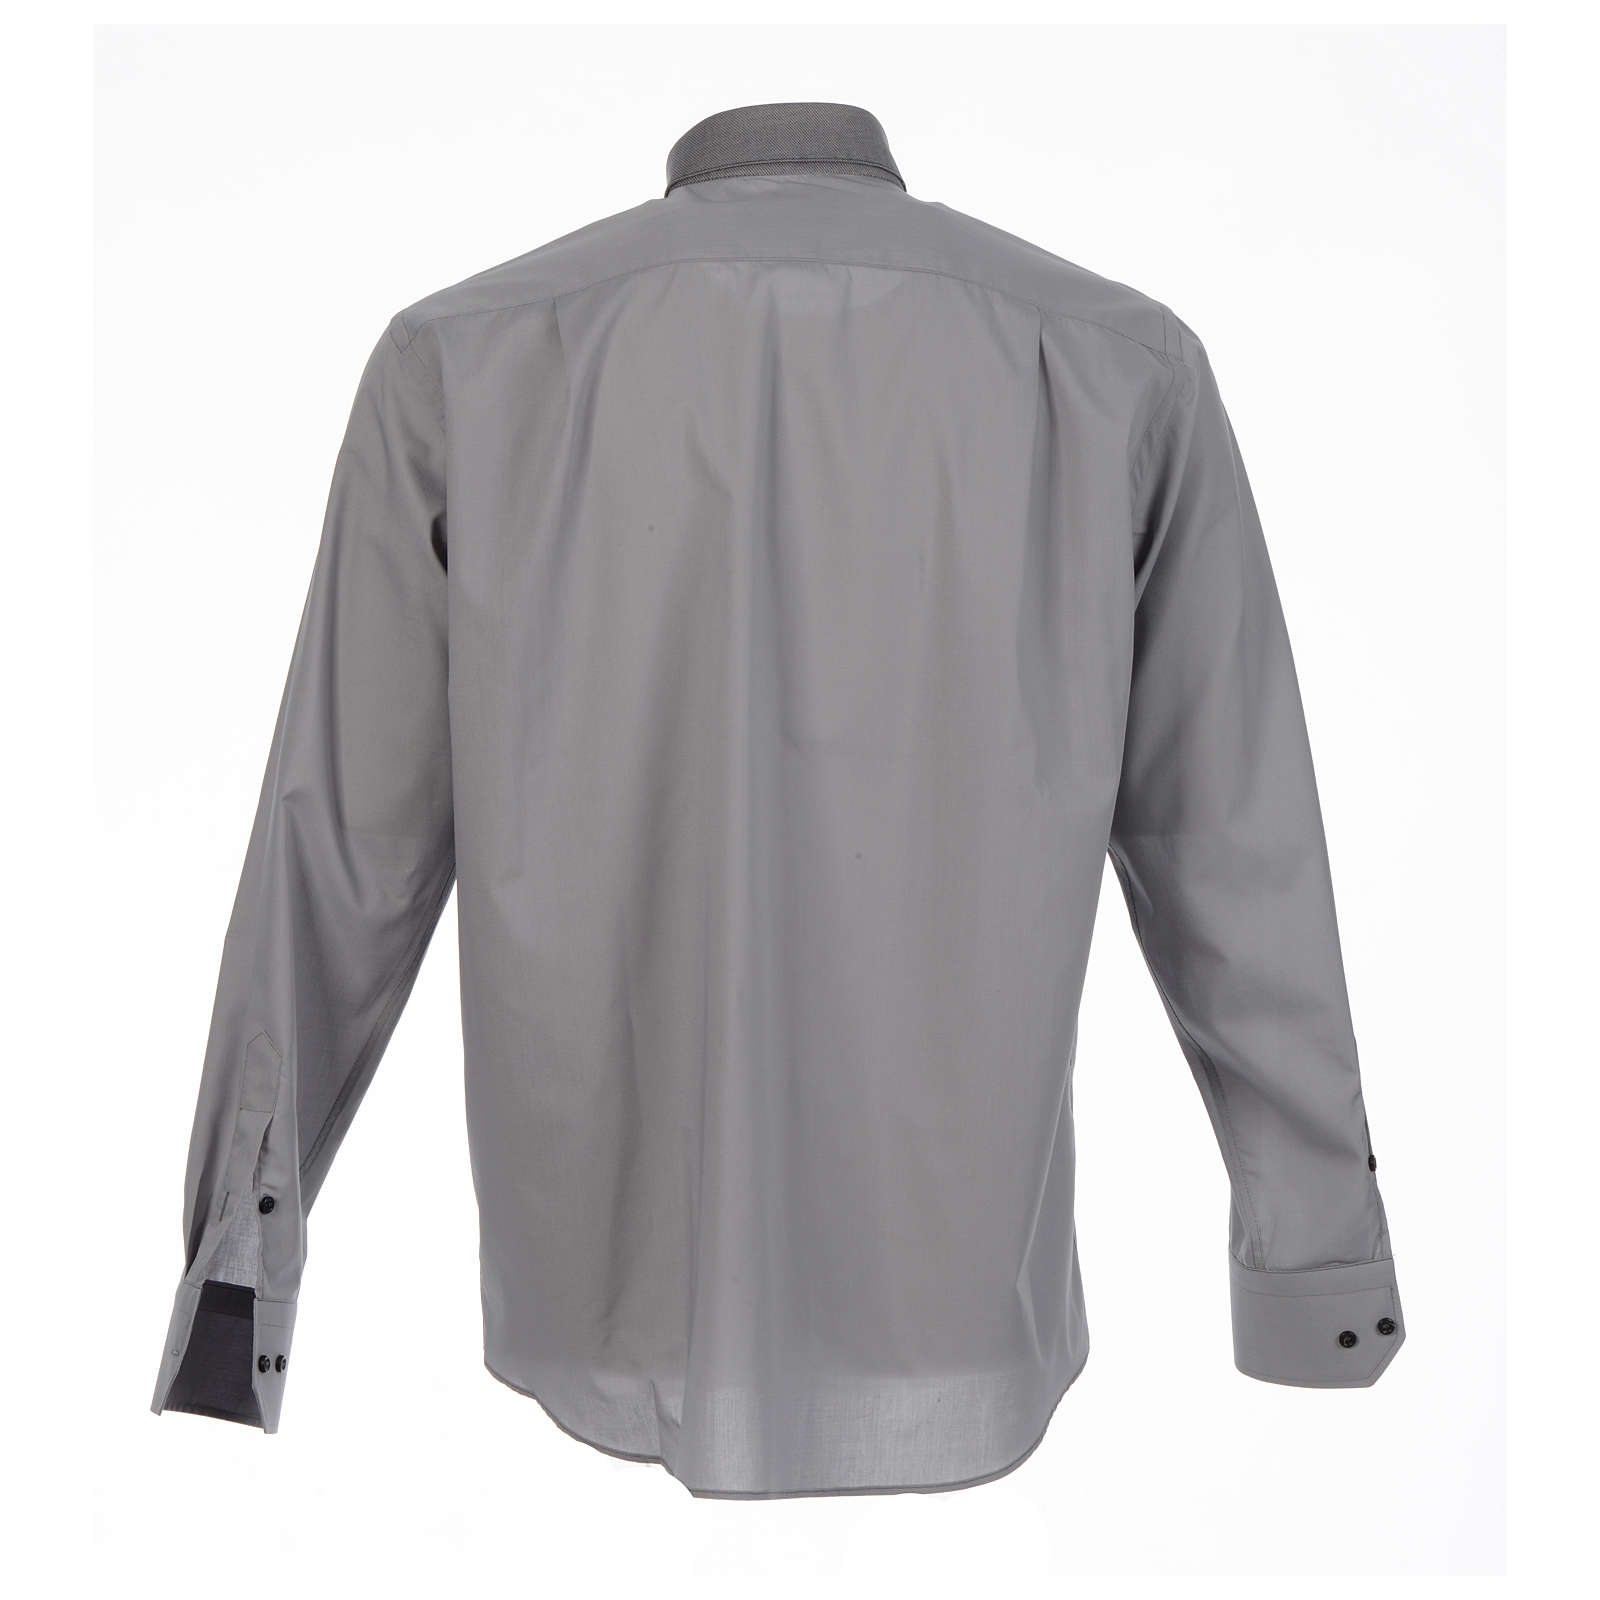 Catholic Clergy shirt solid color and diagonal grey long sleeve 4